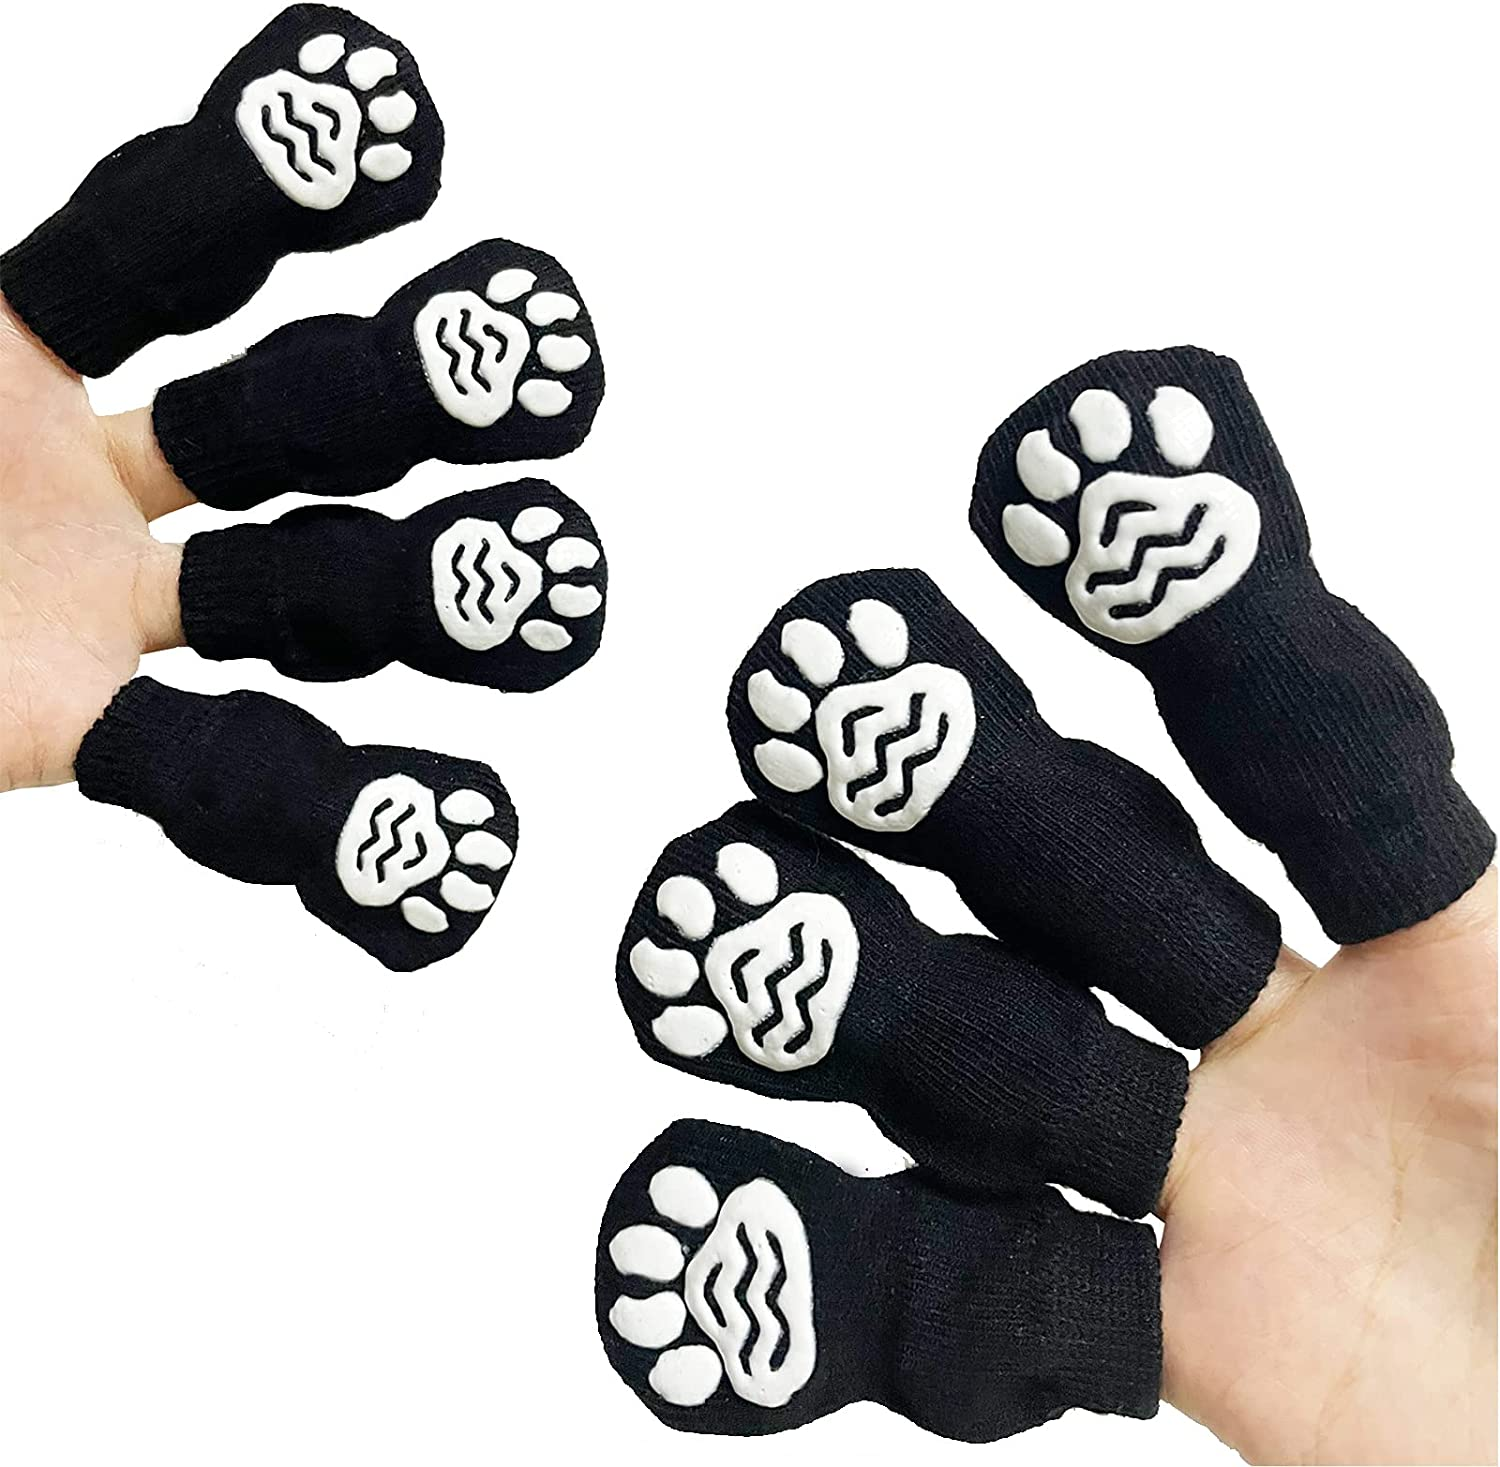 TUESTOP 4 PCS Full Cotton Dog wi Popular products Socks Dogs free shipping for Pet Small